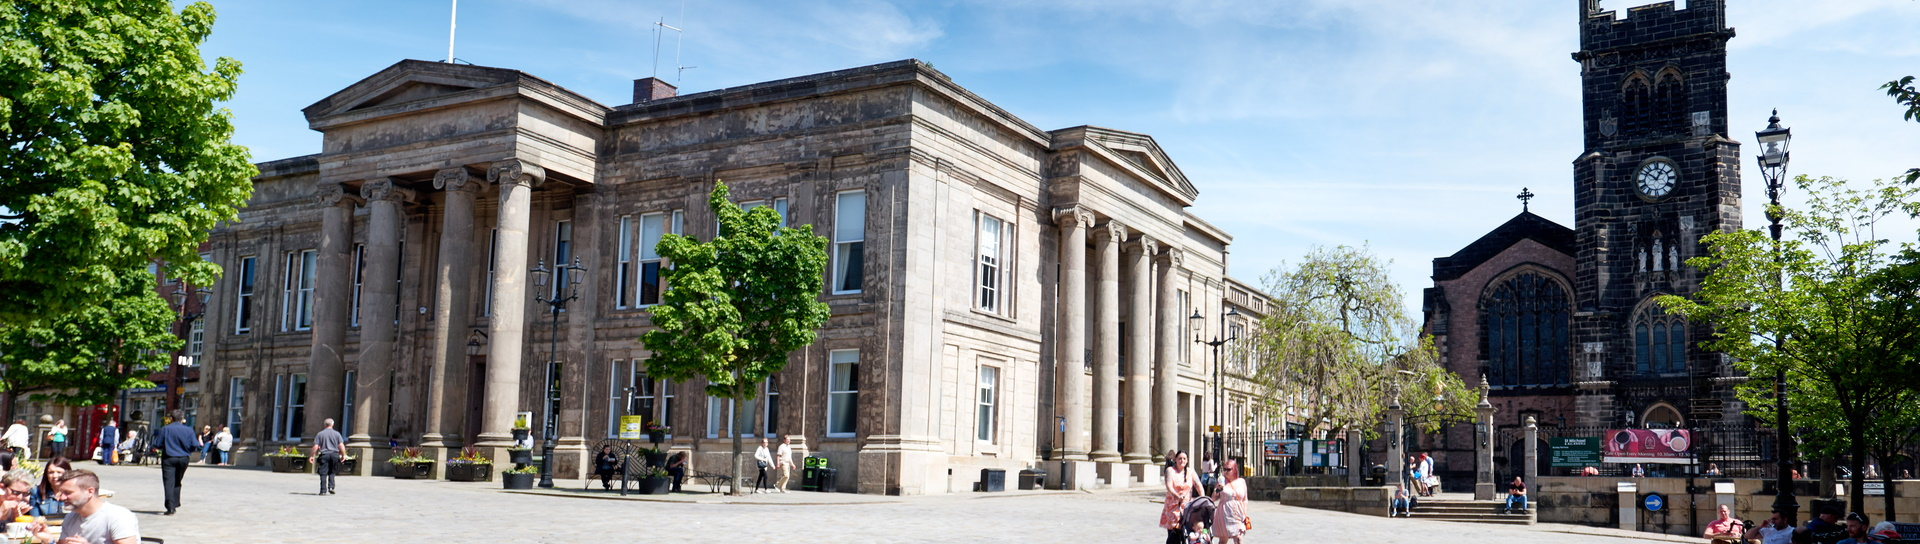 Macclesfield Town Hall cropped version